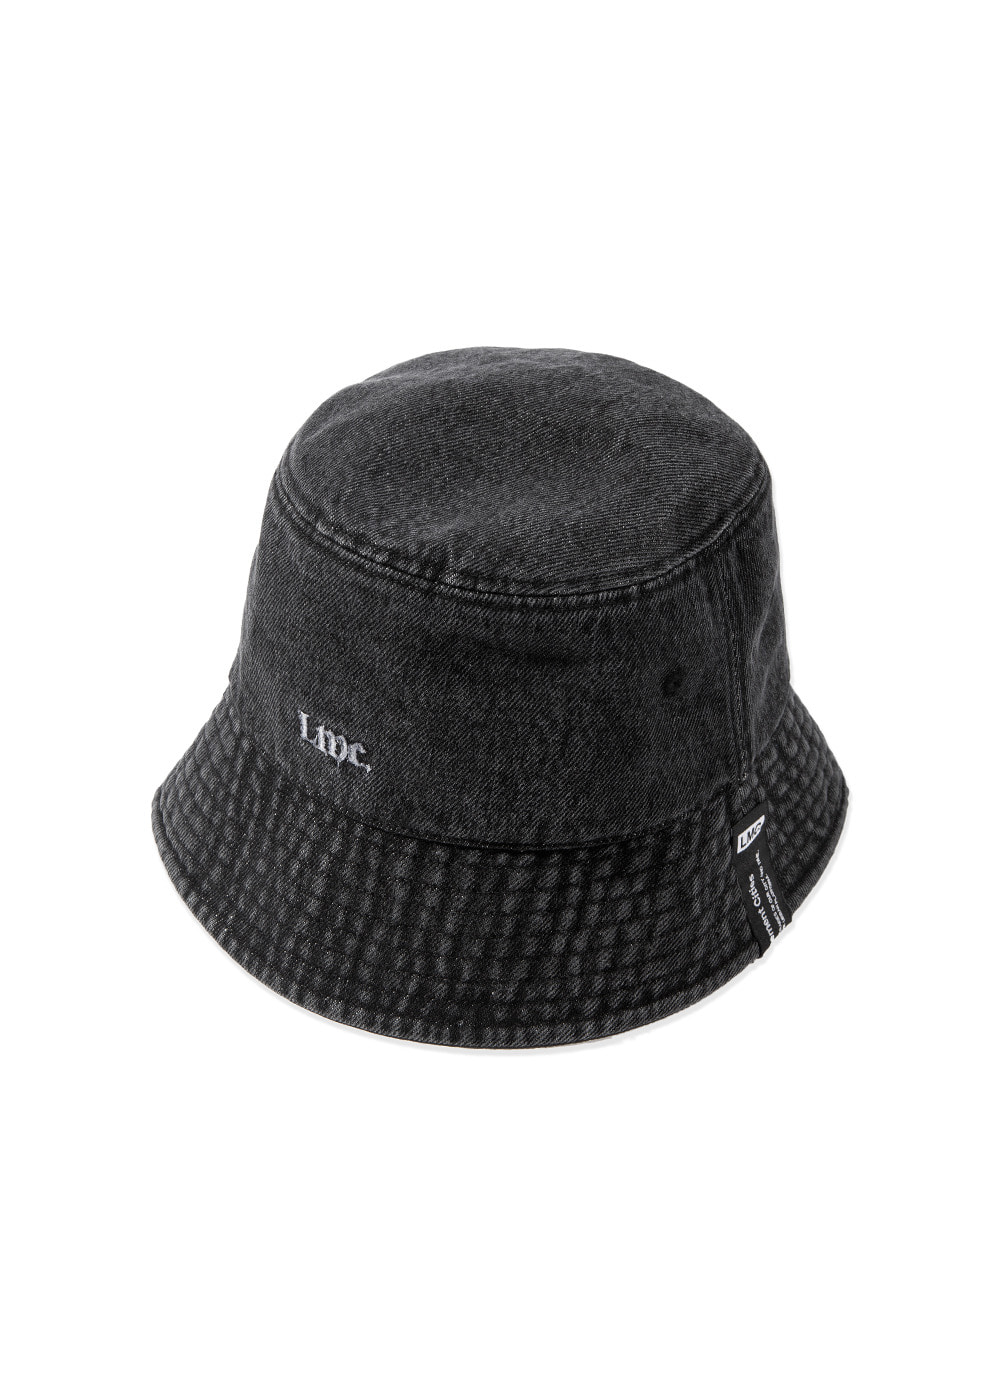 LMC STONE WASHED DENIM BUCKET HAT black